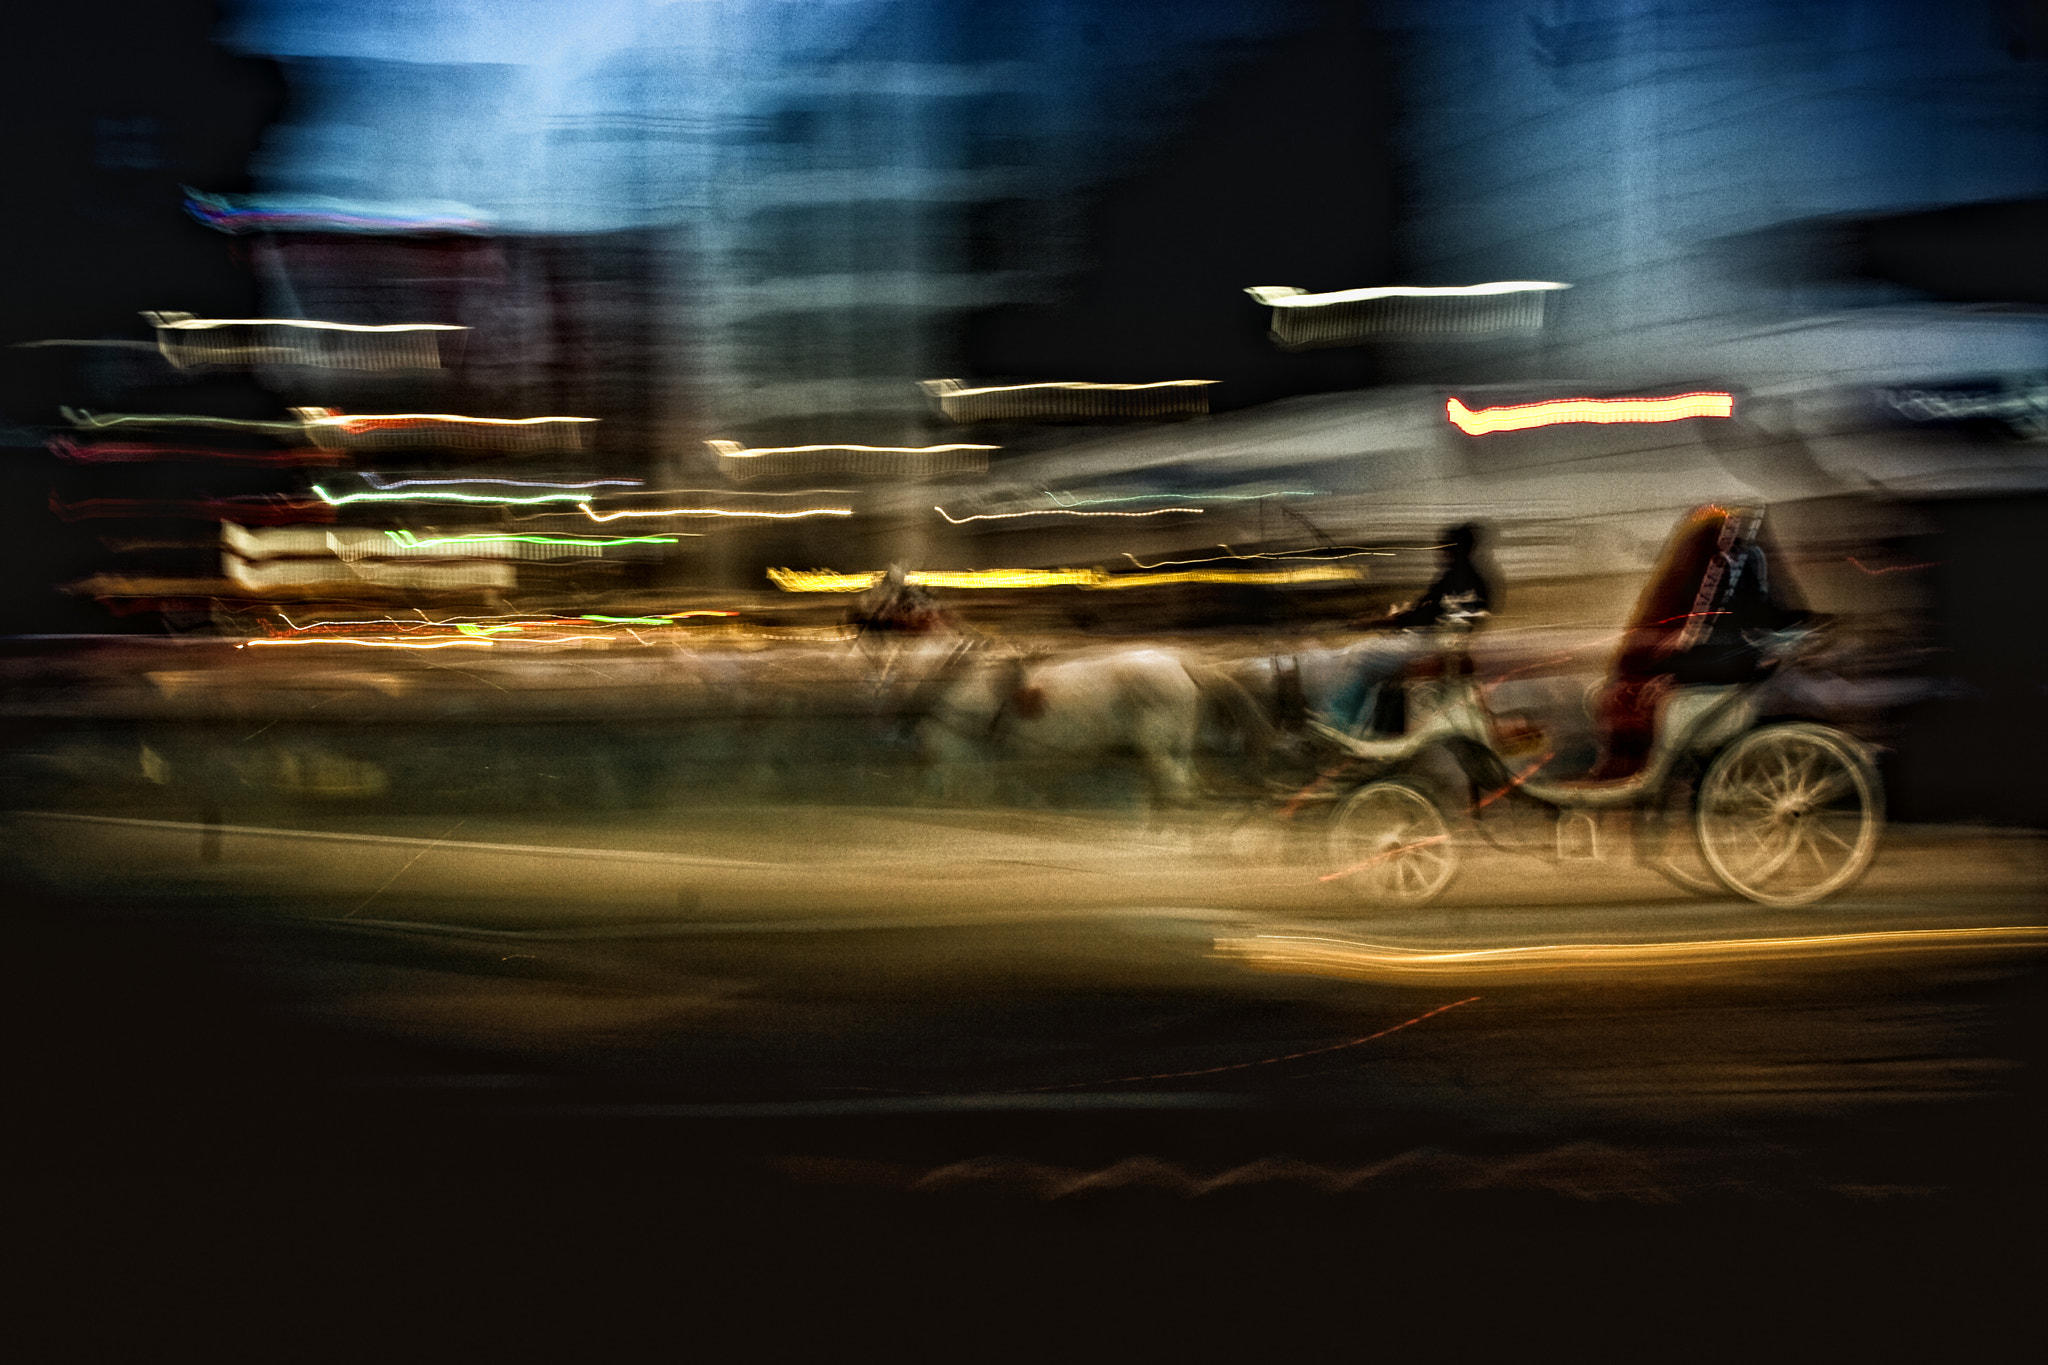 Photograph XIII - ghost rider in the city by Yunus Emre Ates on 500px